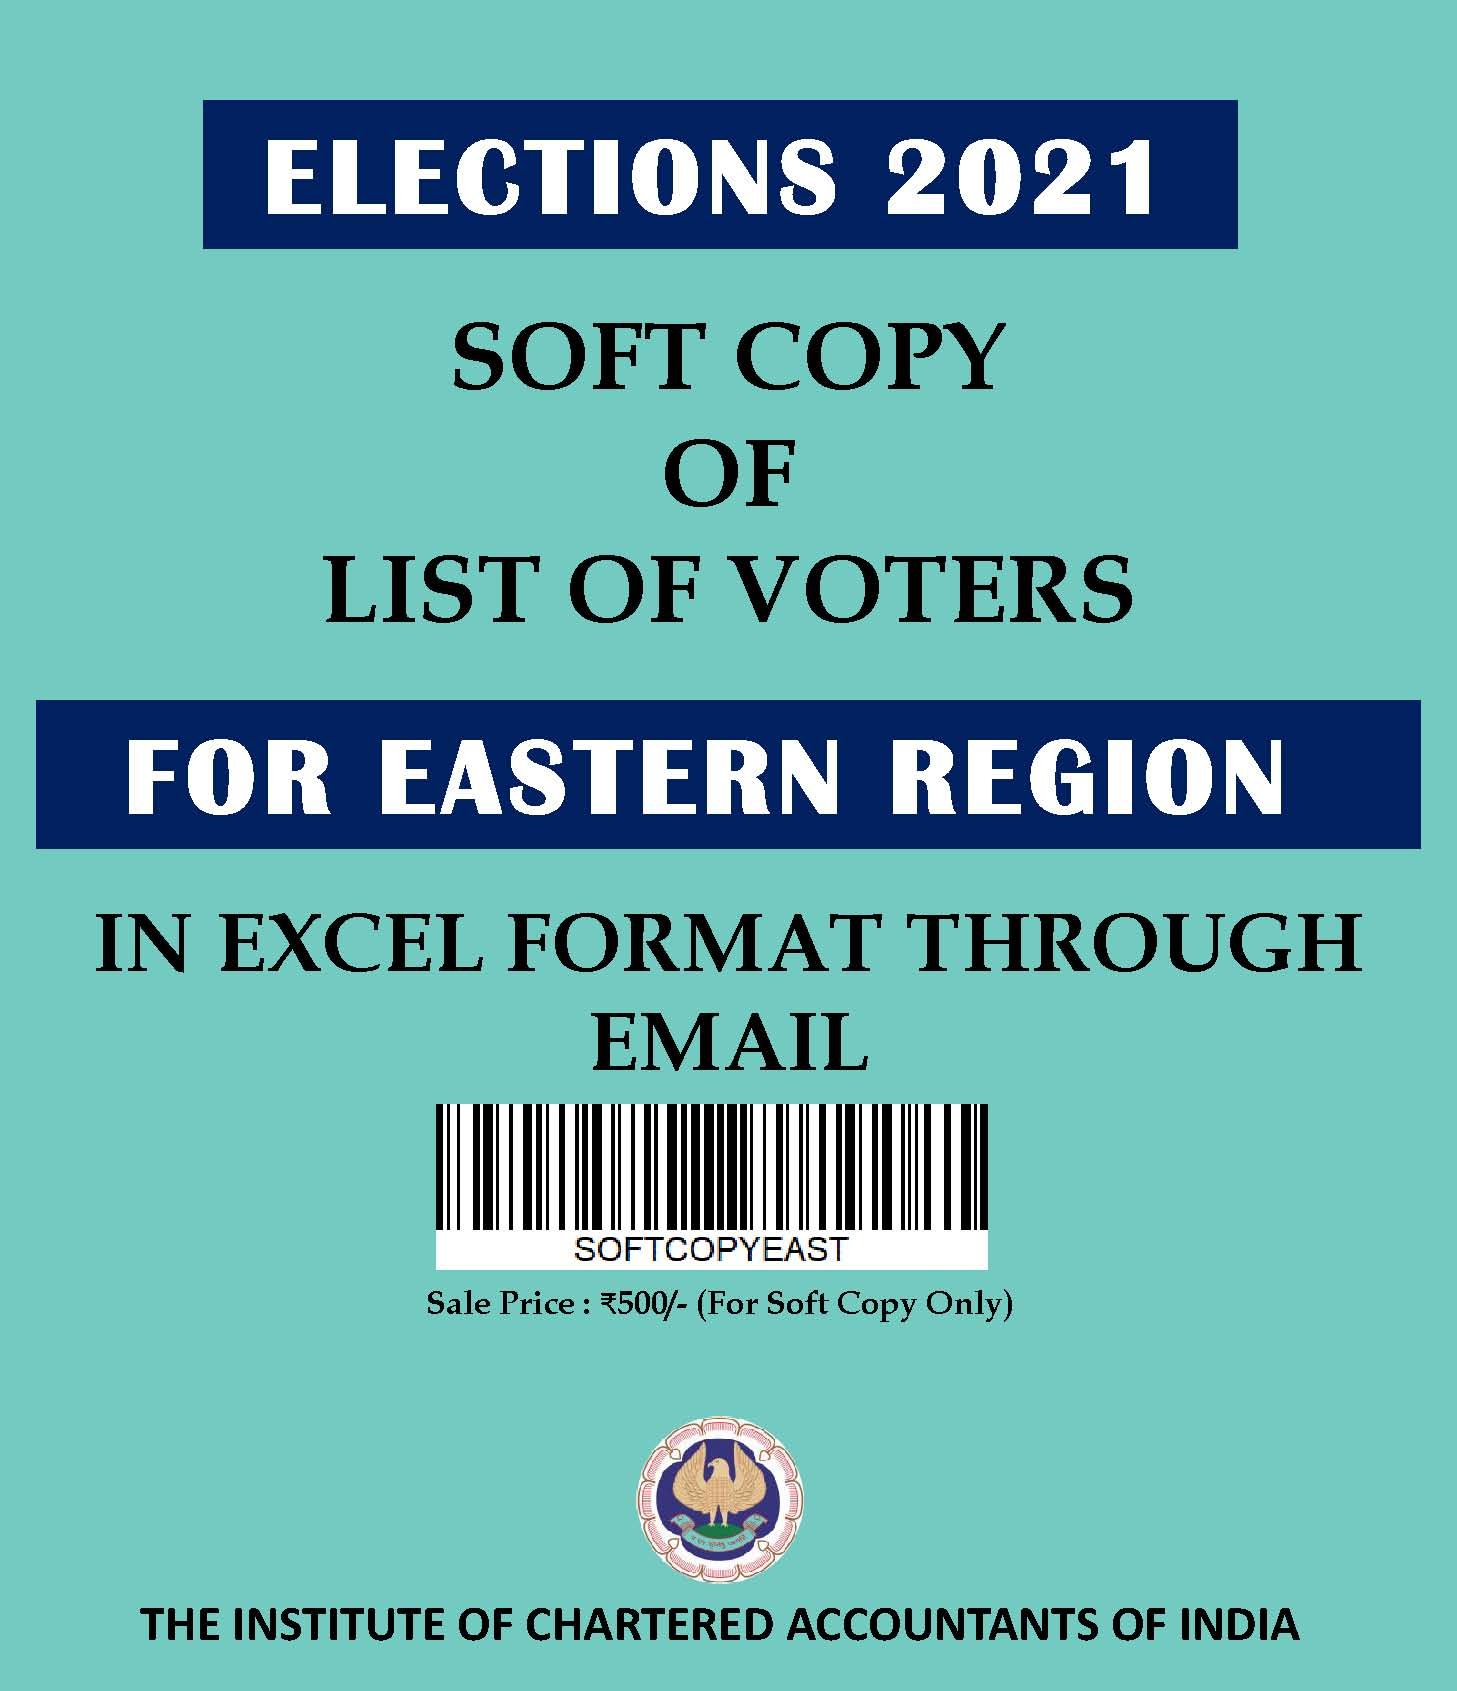 SOFT COPY: List of Voters for Eastern Region (Elections 2021) in Excel Format Through E-mail